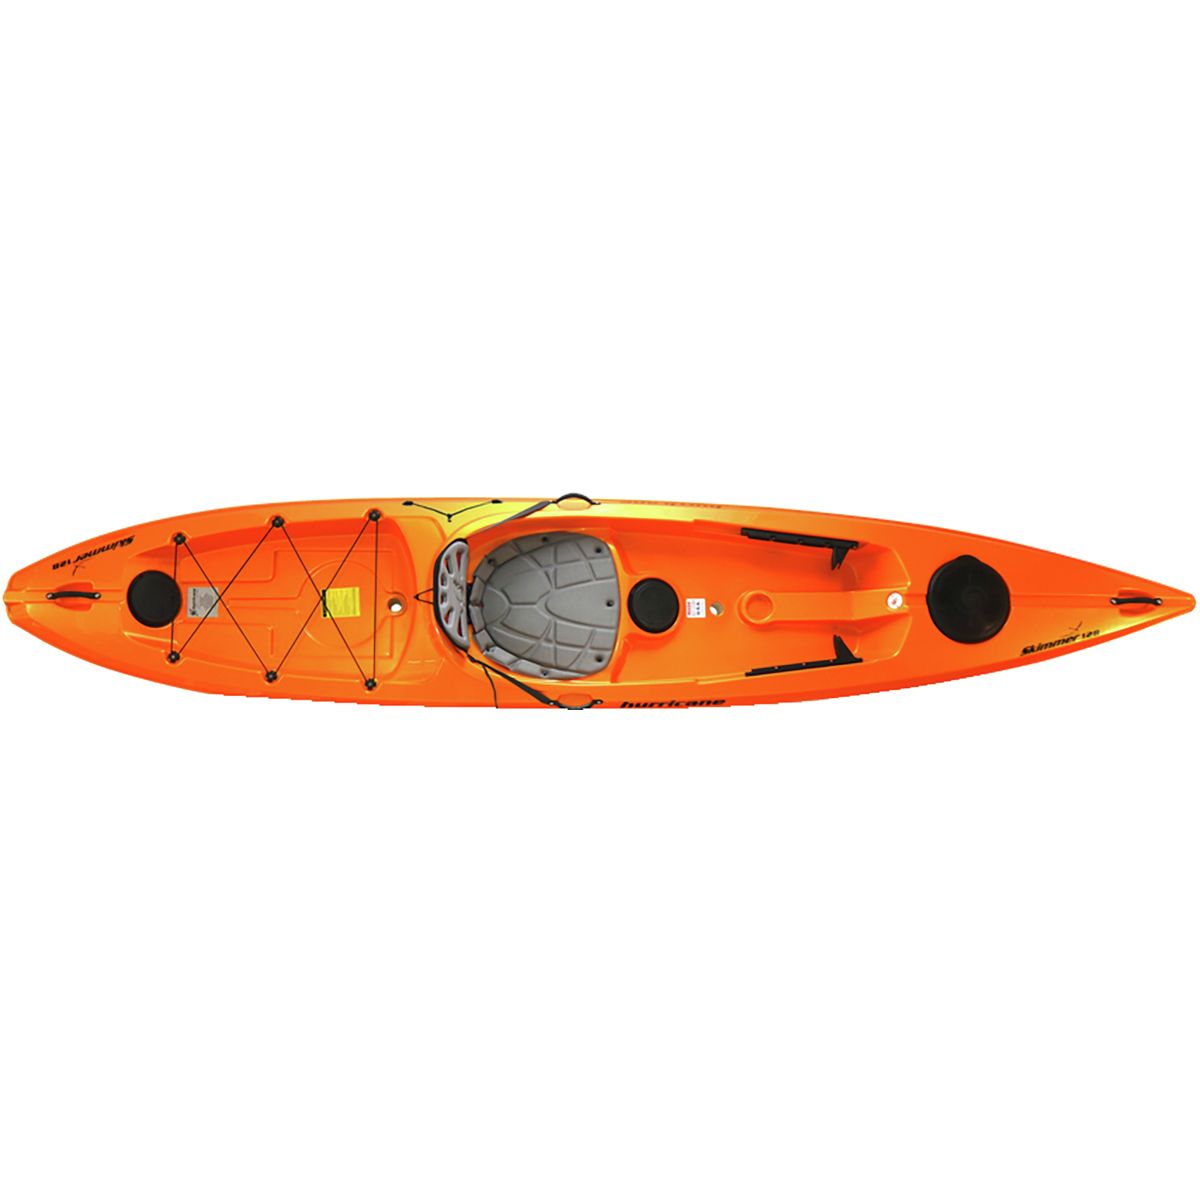 photo: Hurricane Santee Expedition 128 touring kayak